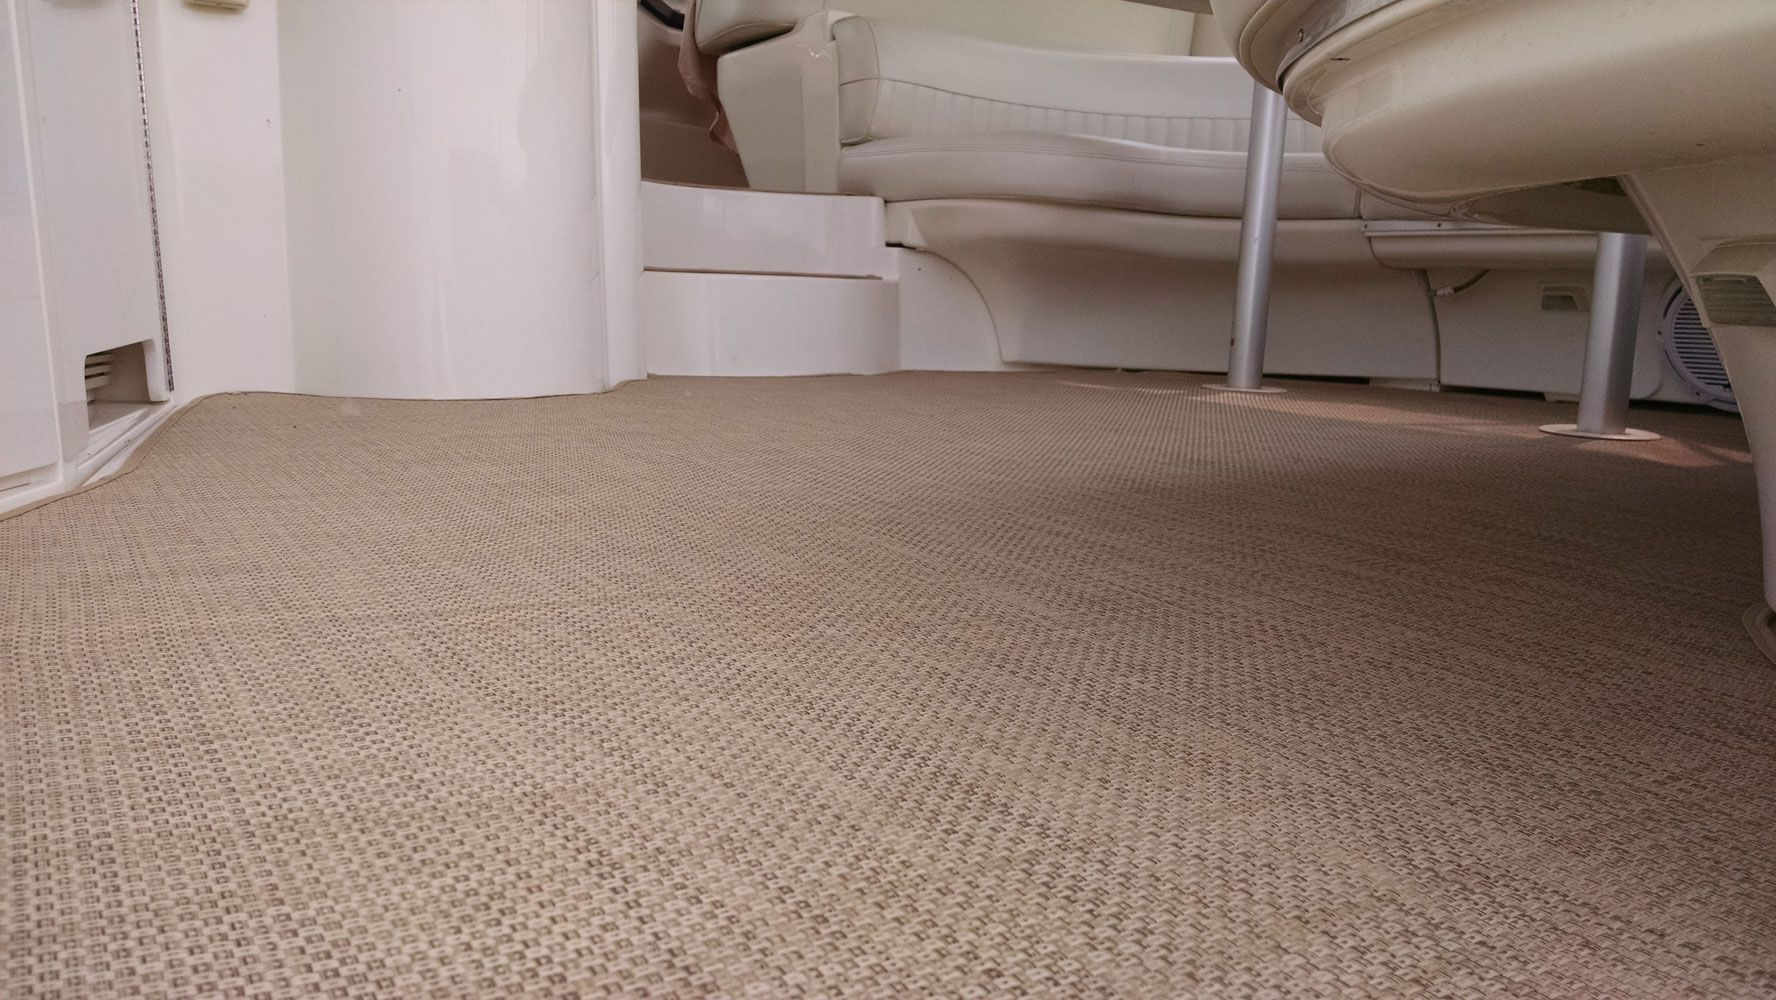 Beautiful Infinity Fabrics Marine Carpeting Recently Installed On A Carver Yacht In Chicago Http Www Chicagomarinec Boat Carpet Marine Carpet Carver Yachts